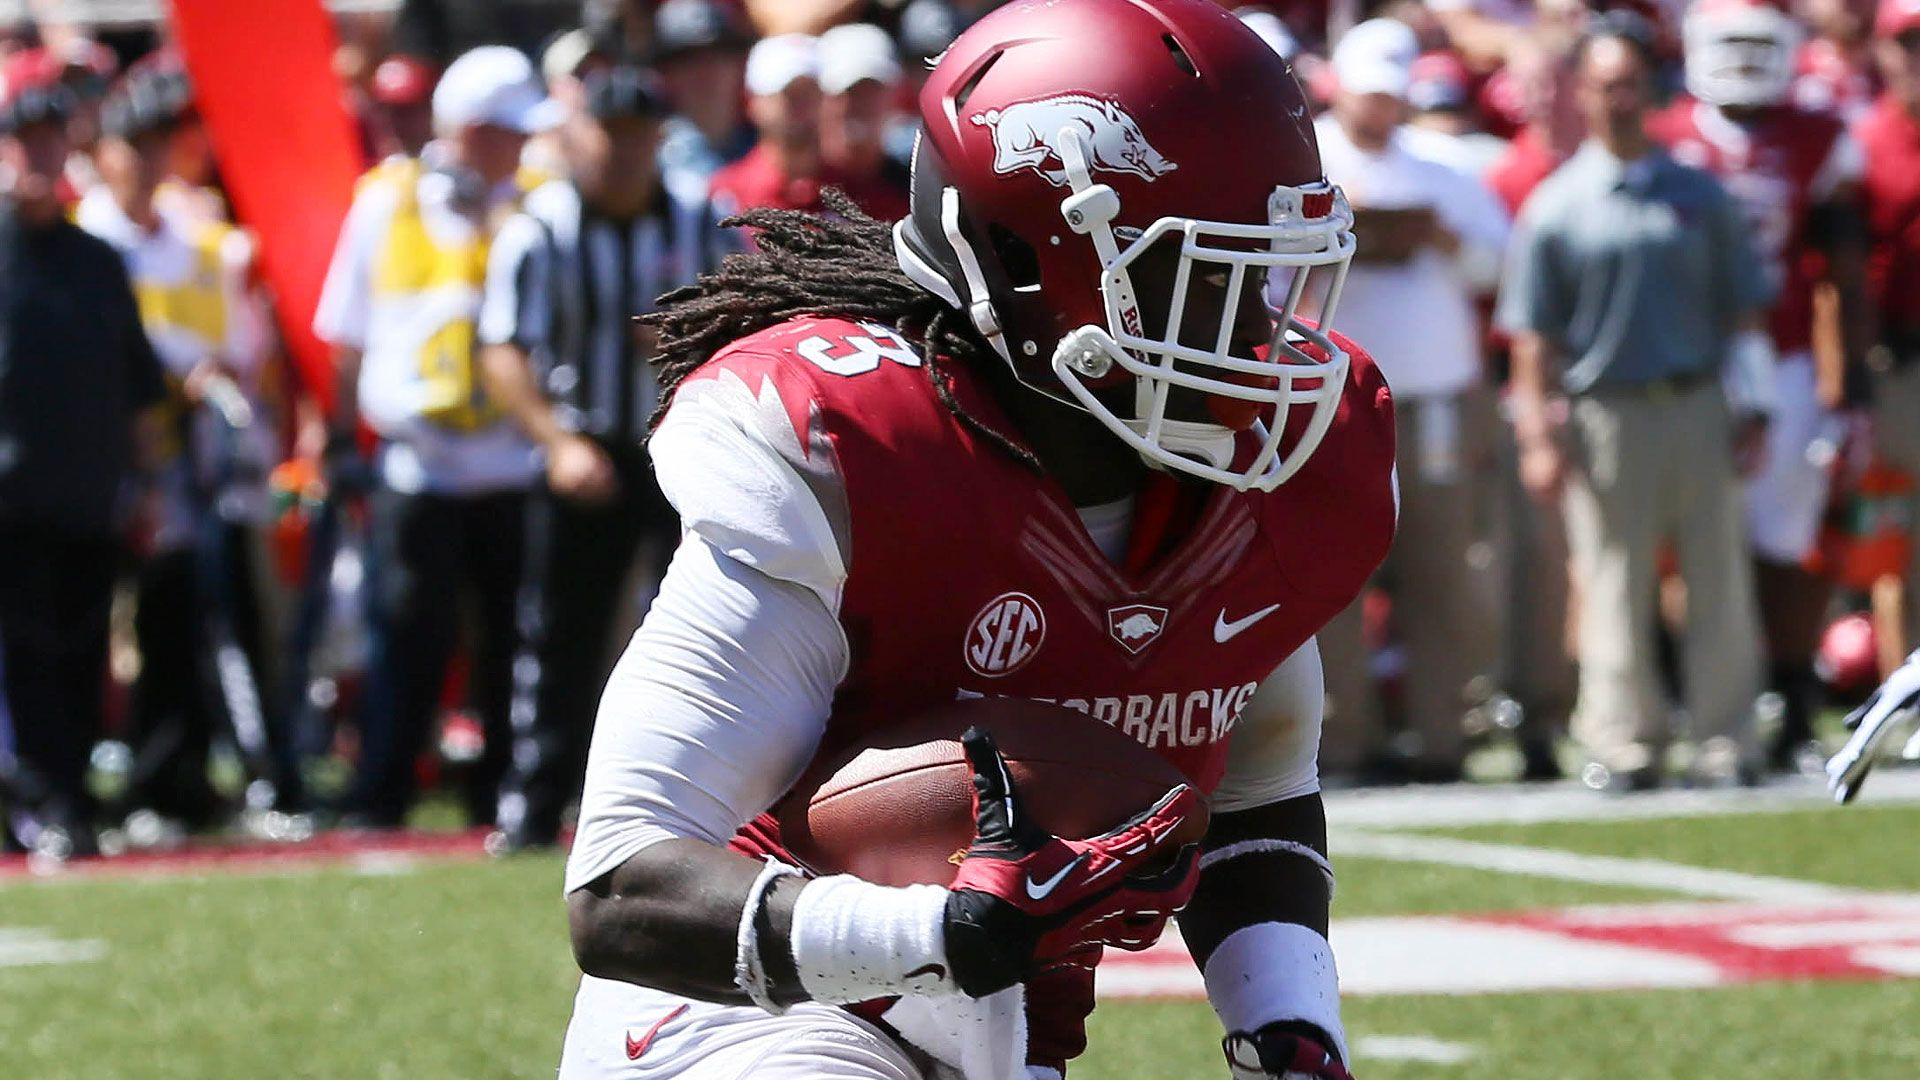 SEC players to keep an eye on in 2014